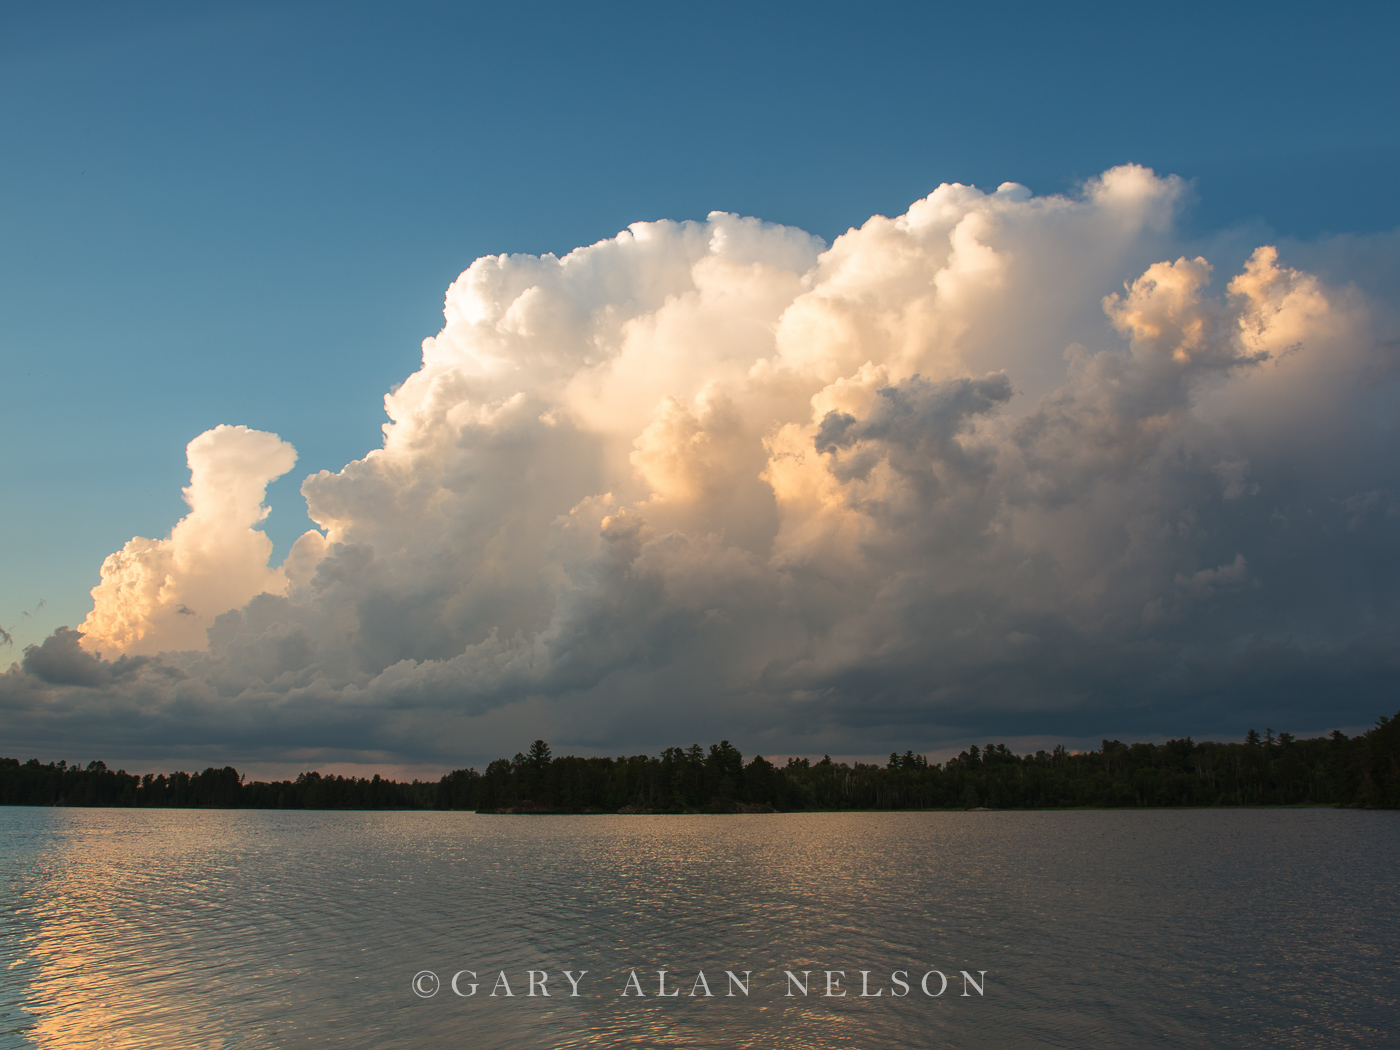 MN-12-118-CL Clouds at sunset, Lake Vermilion, Minnesota